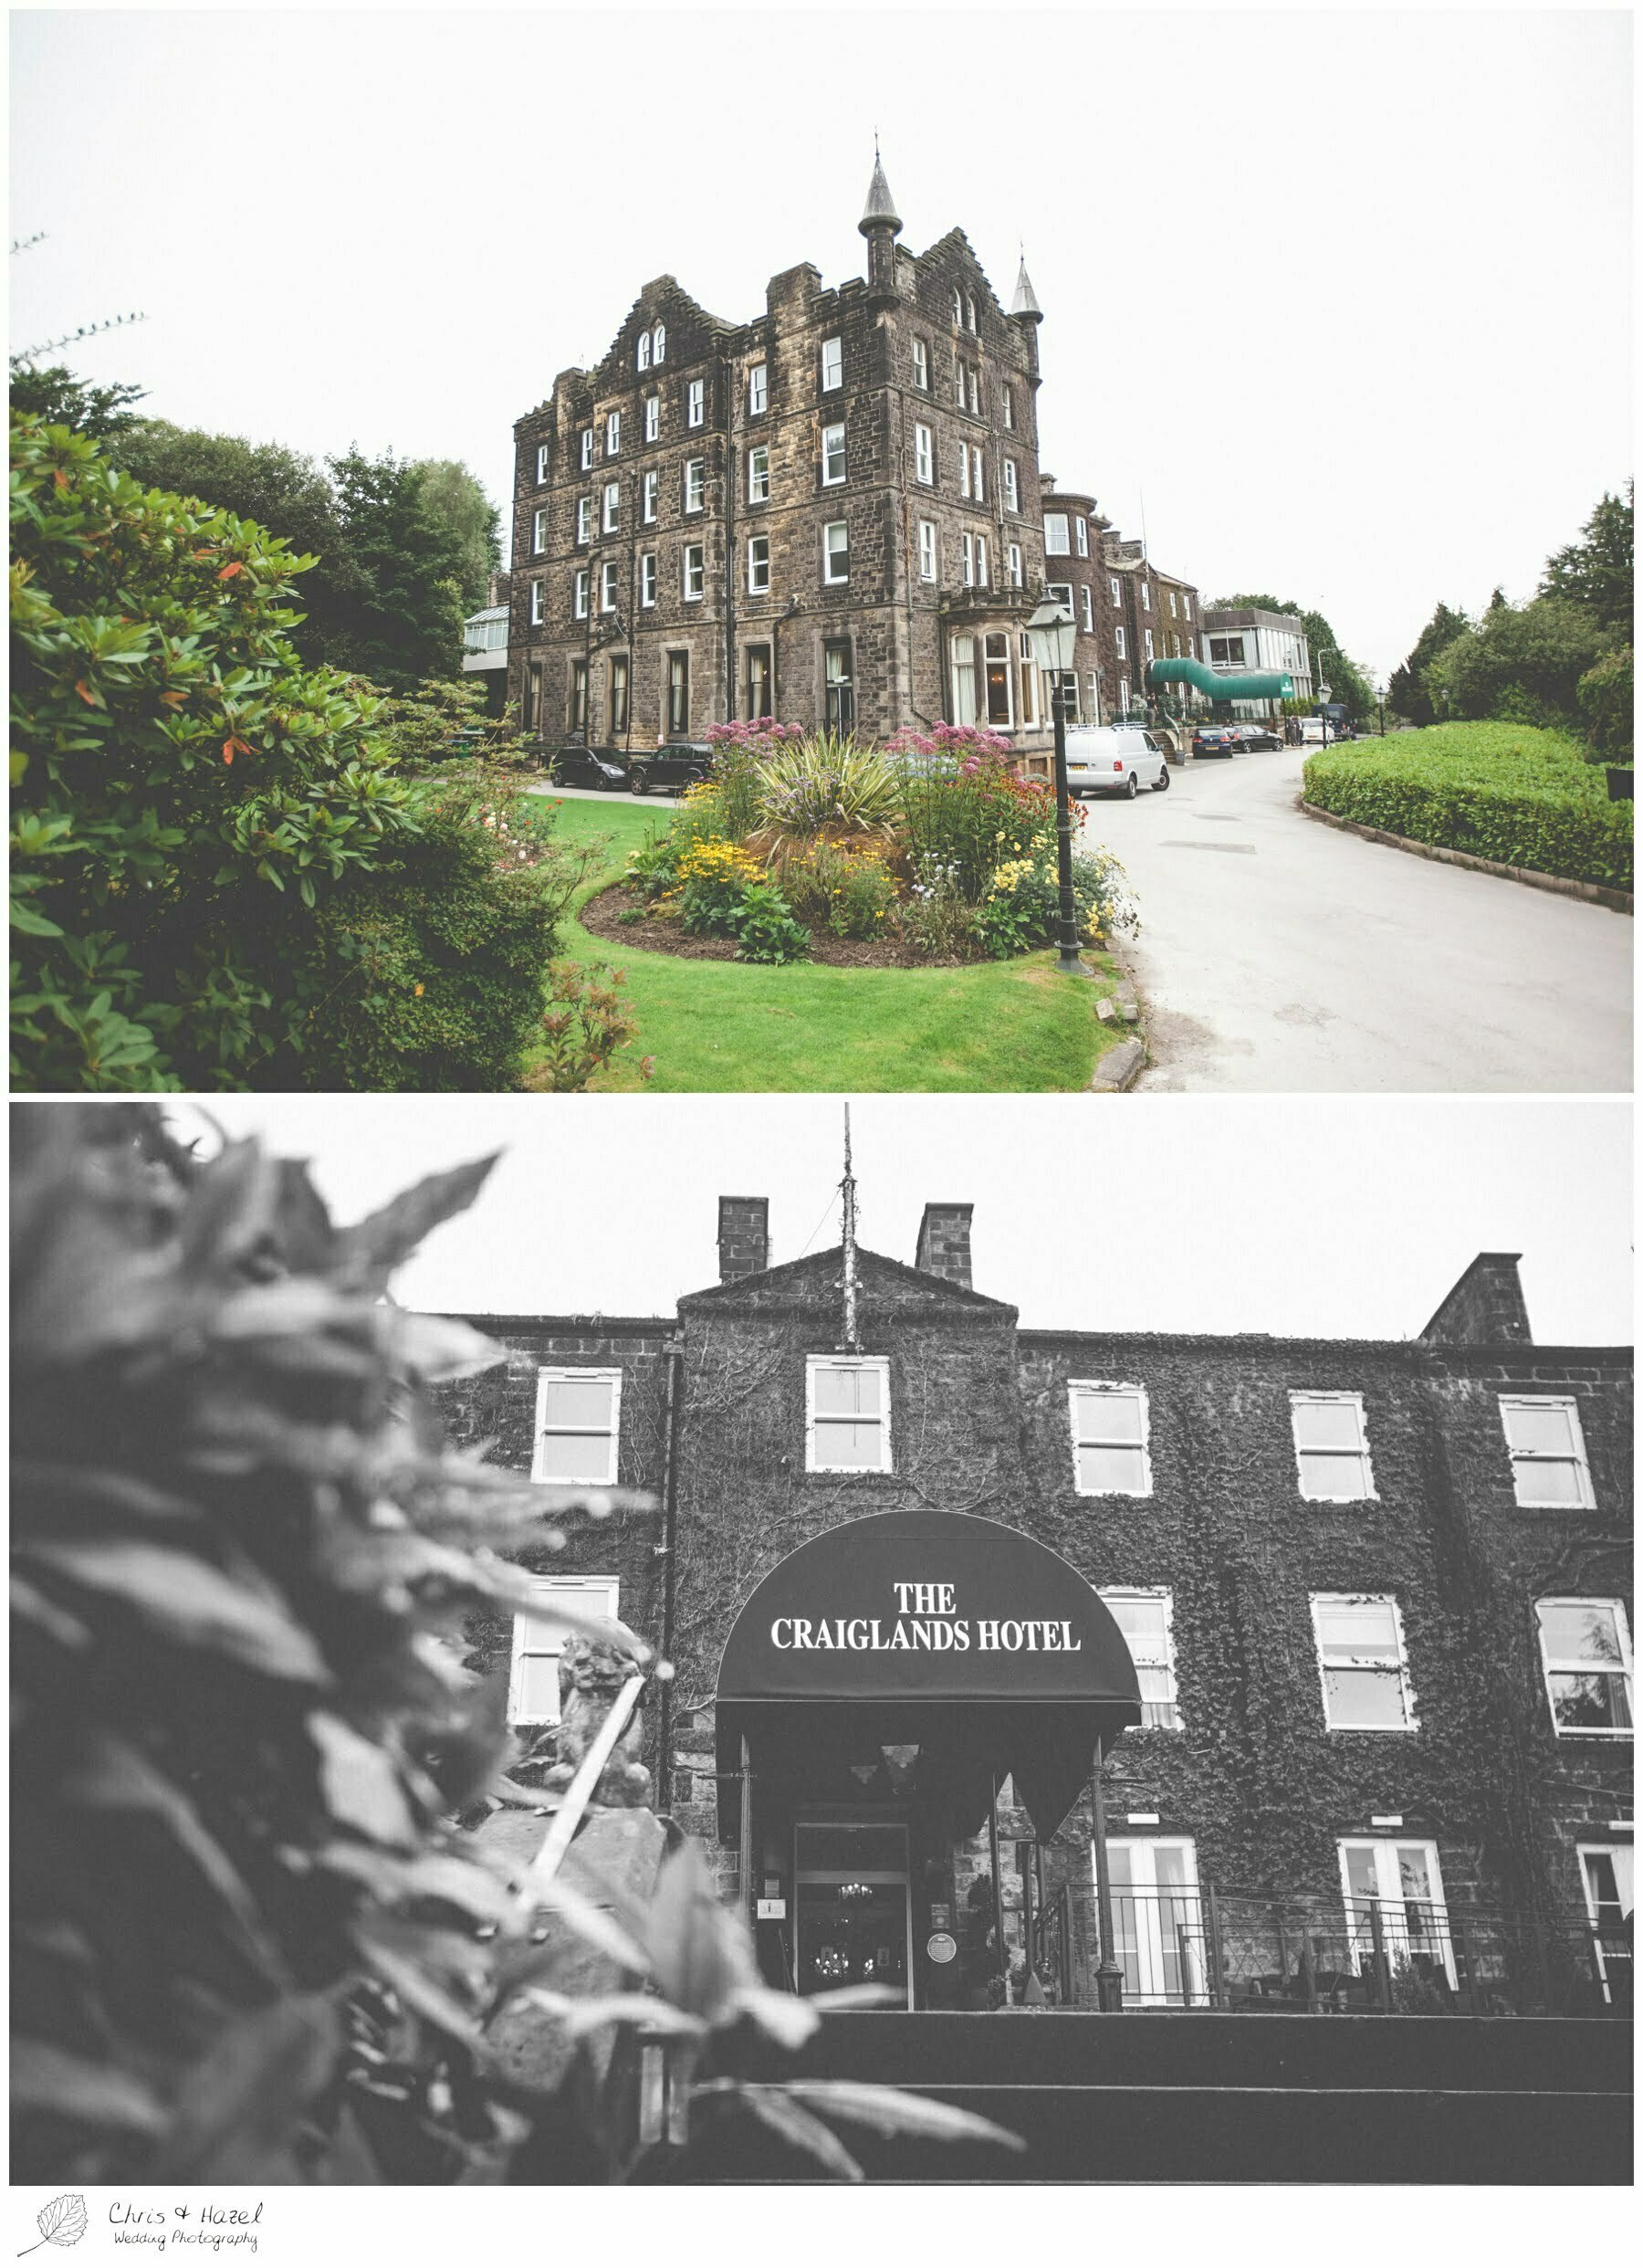 The Craiglands hotel, Ilkley wedding photographer, Ilkley wedding photography, The Craiglands hotel wedding photography, west Yorkshire wedding photography, chris and hazel wedding photography, emily nunwick, sam nicholson, emily nicholson,